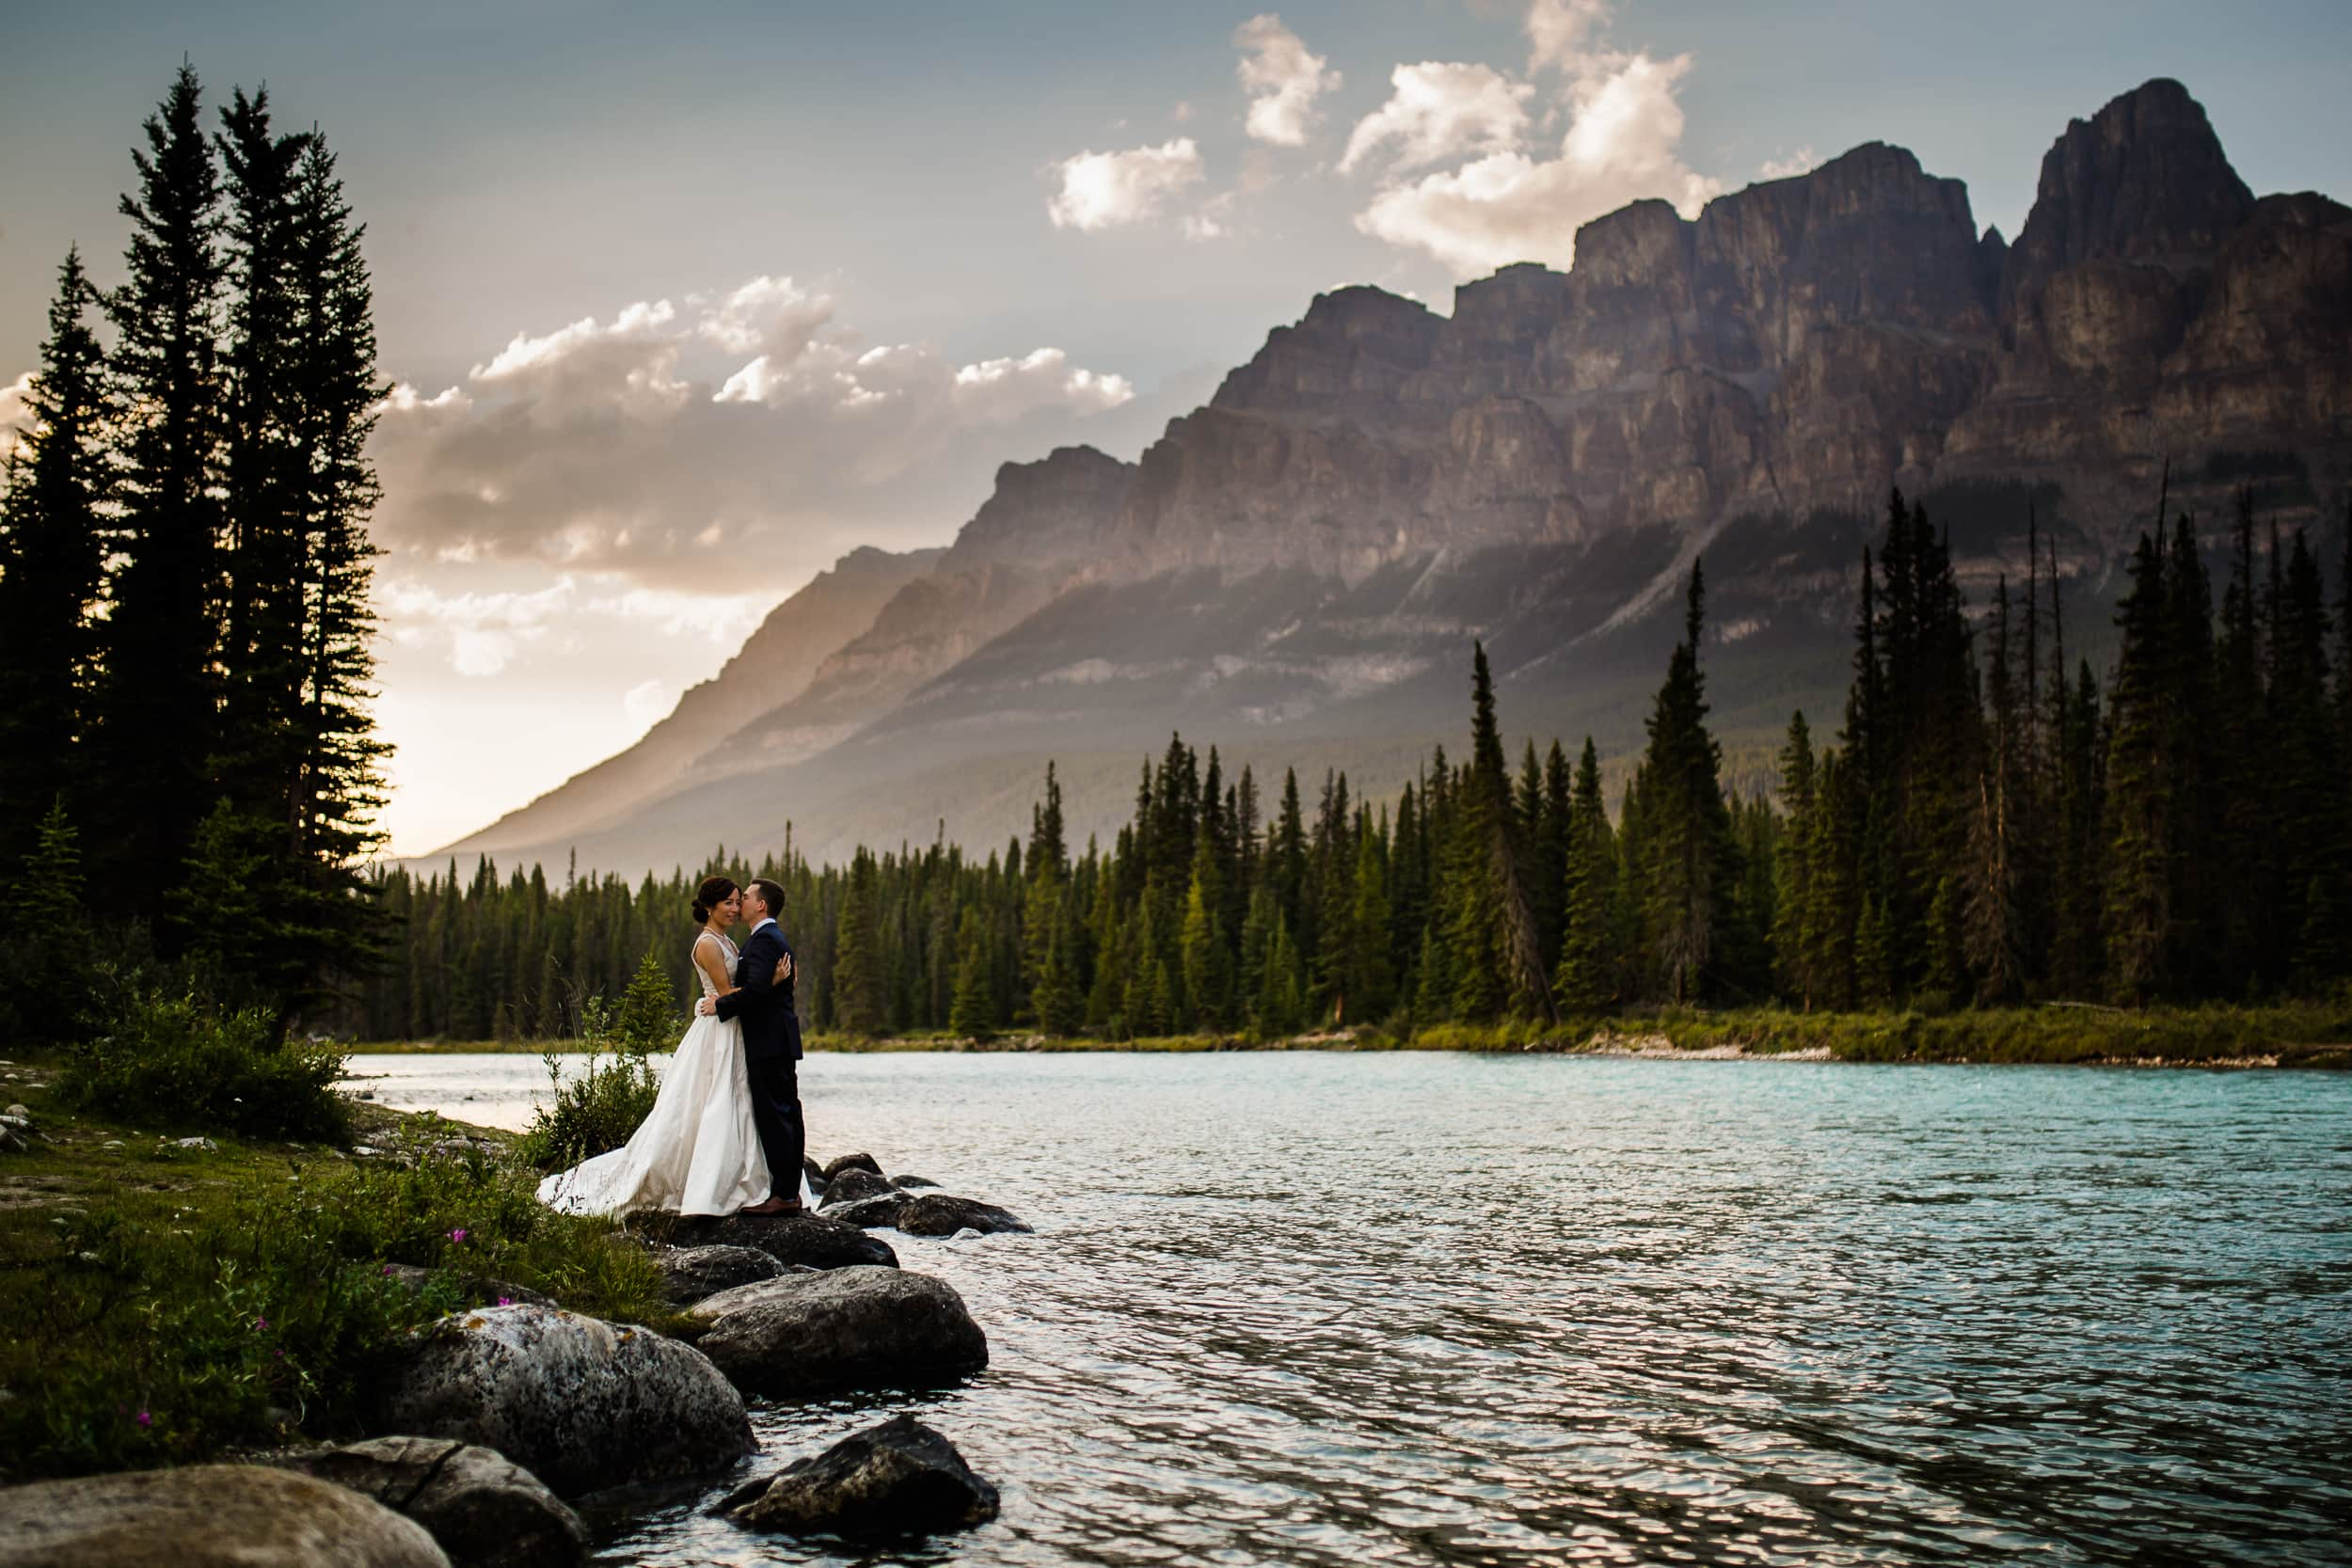 Honeymoon Photography - Come before, or after your wedding to have a one on one bride/groom portrait session without the pressures of a wedding day. We take our time, and enjoy the mountains in a very romantic fashion to celebrate this special time in your lives.Click on photo to see full gallery.